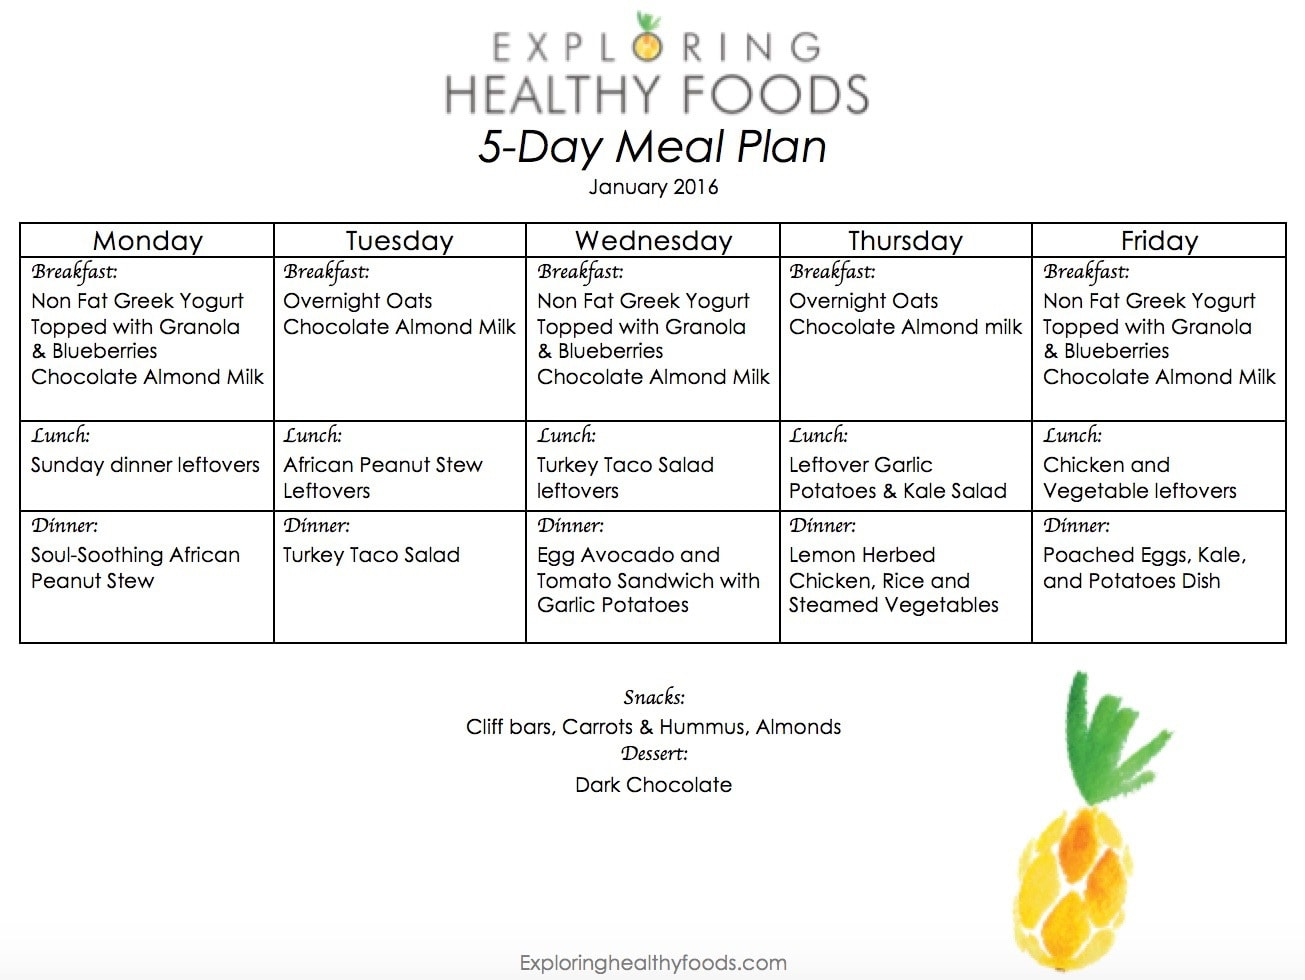 Basic healthy eating plan - Happy New Year